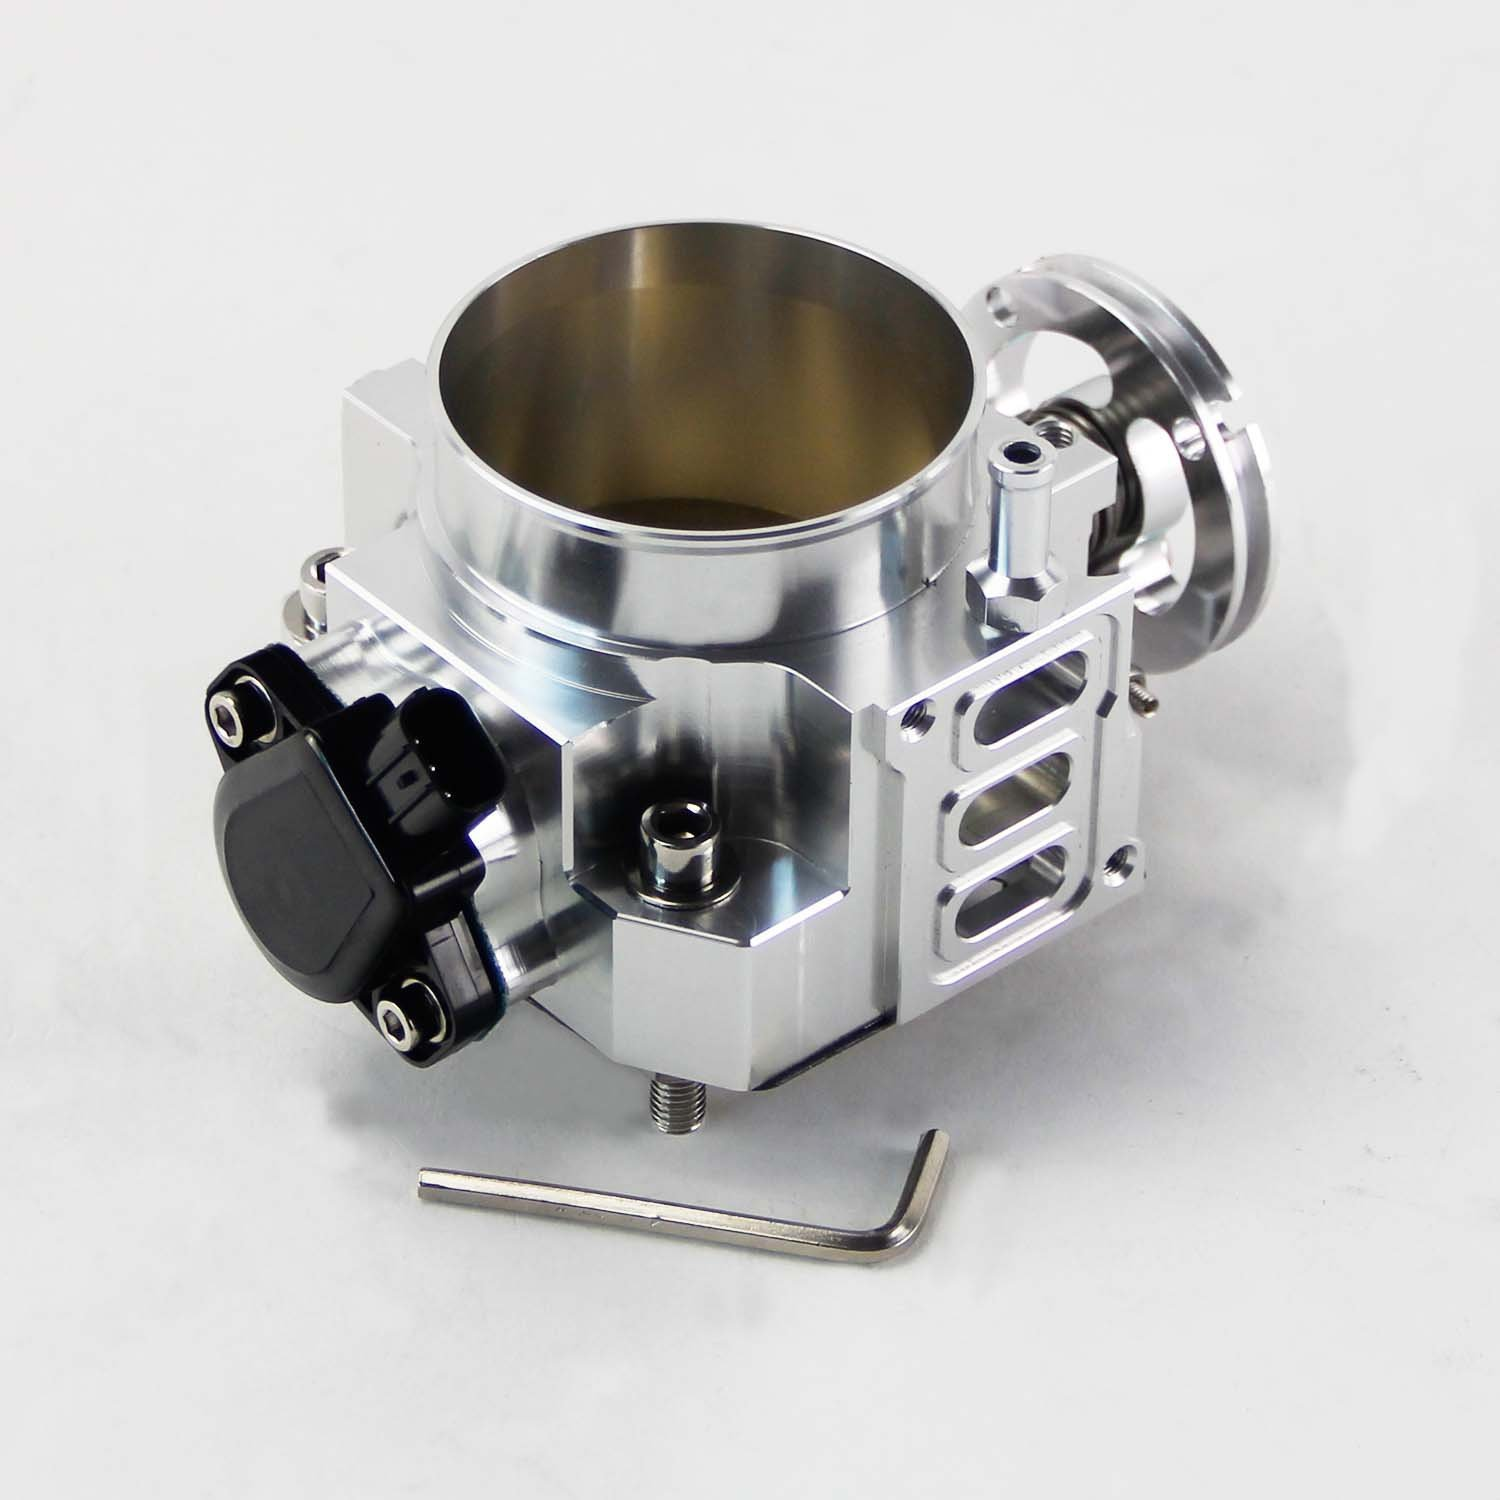 Cheap 70mm Throttle Body Honda, find 70mm Throttle Body